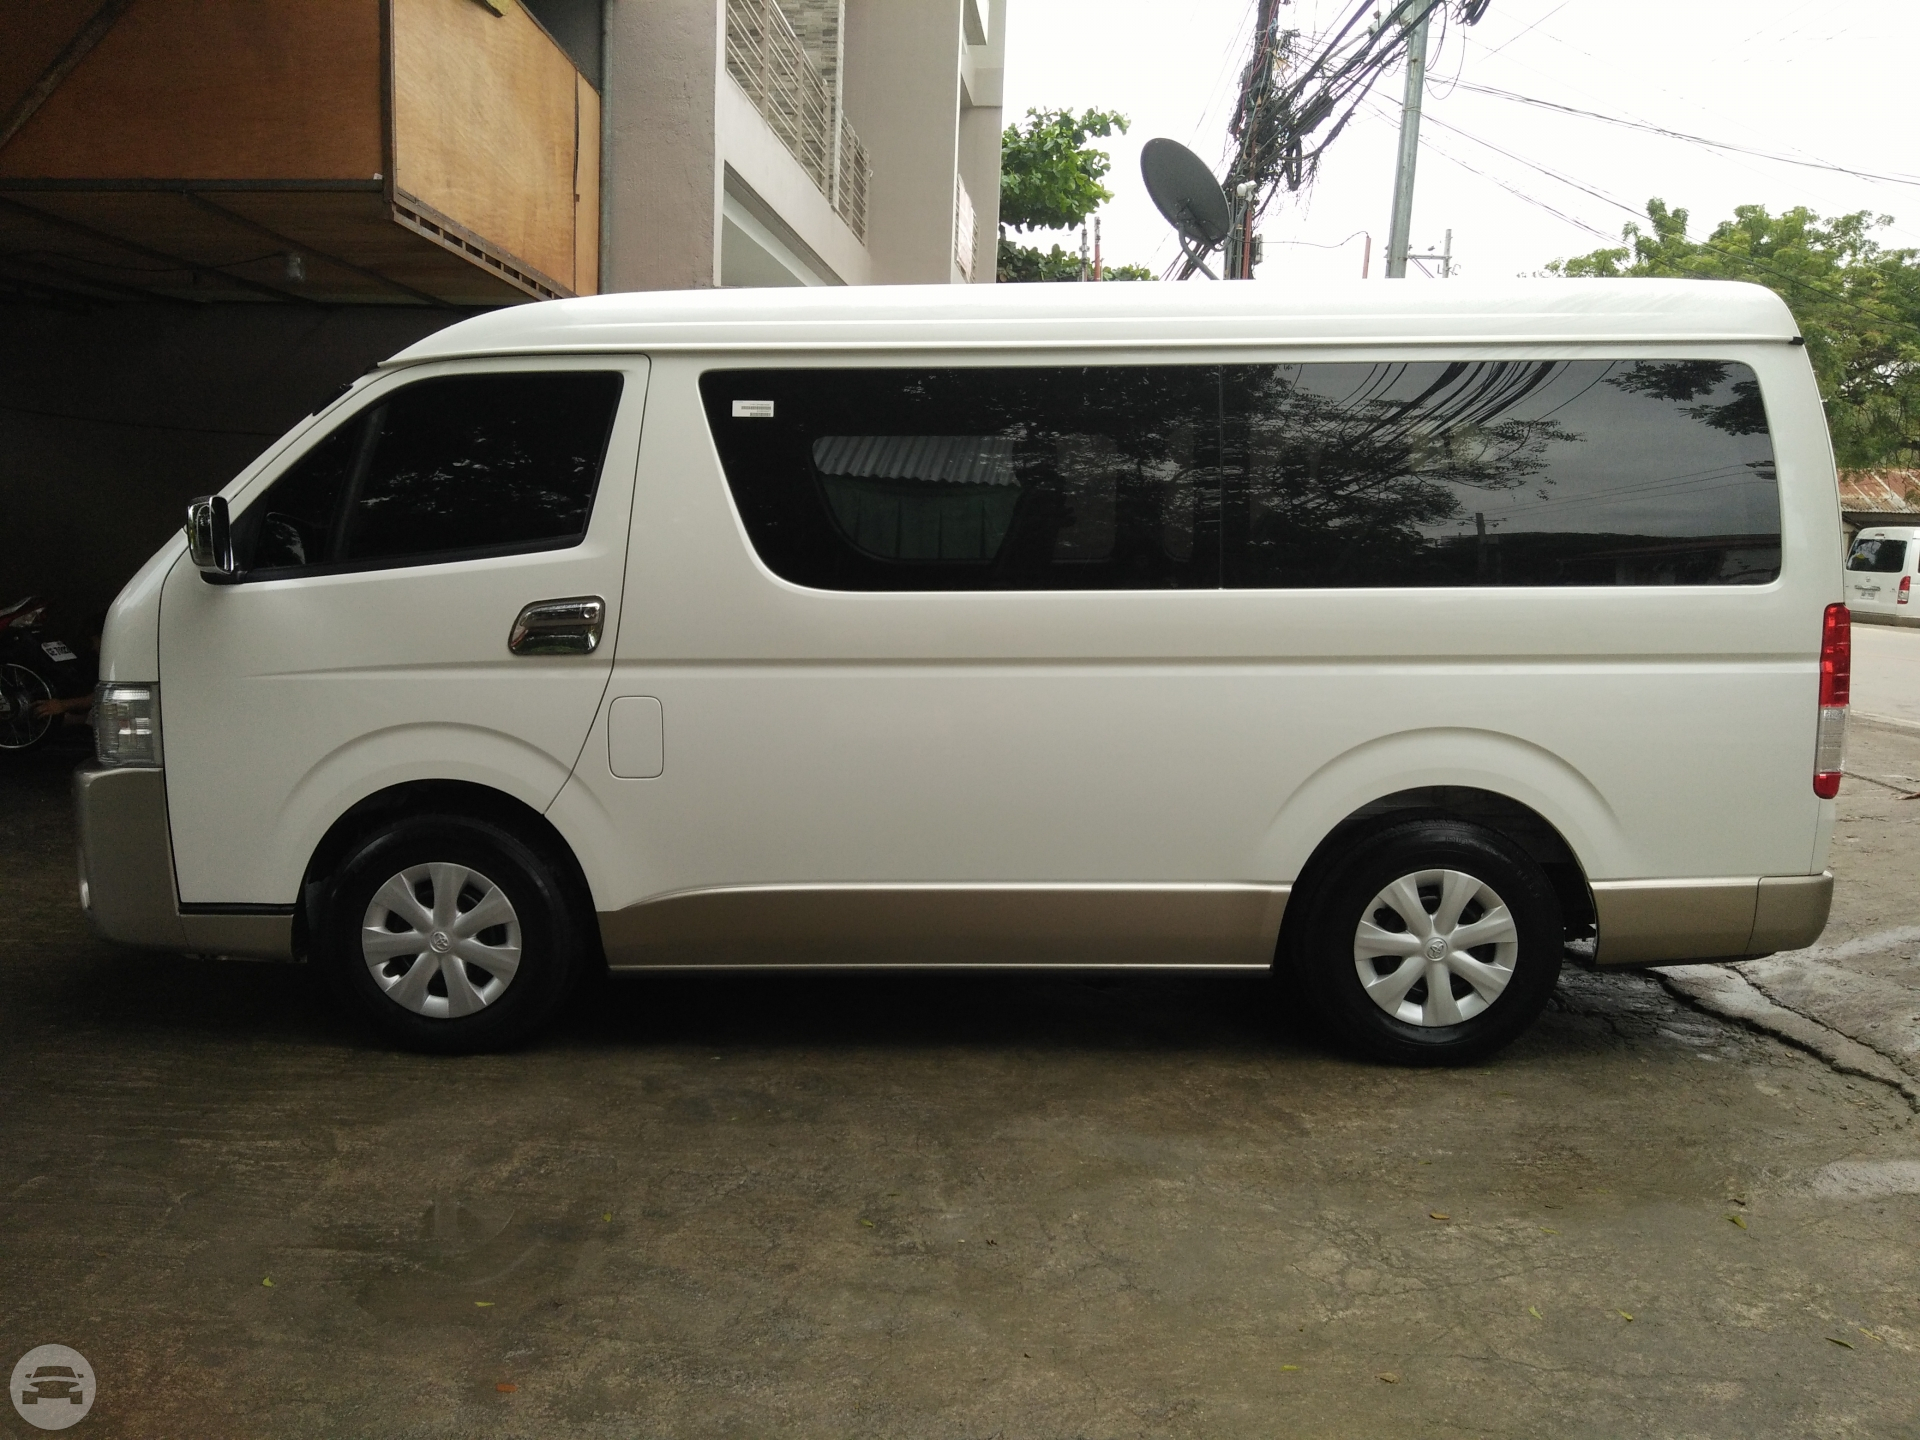 toyota Hiace Van / Cebu City, Cebu   / Hourly ₱0.00